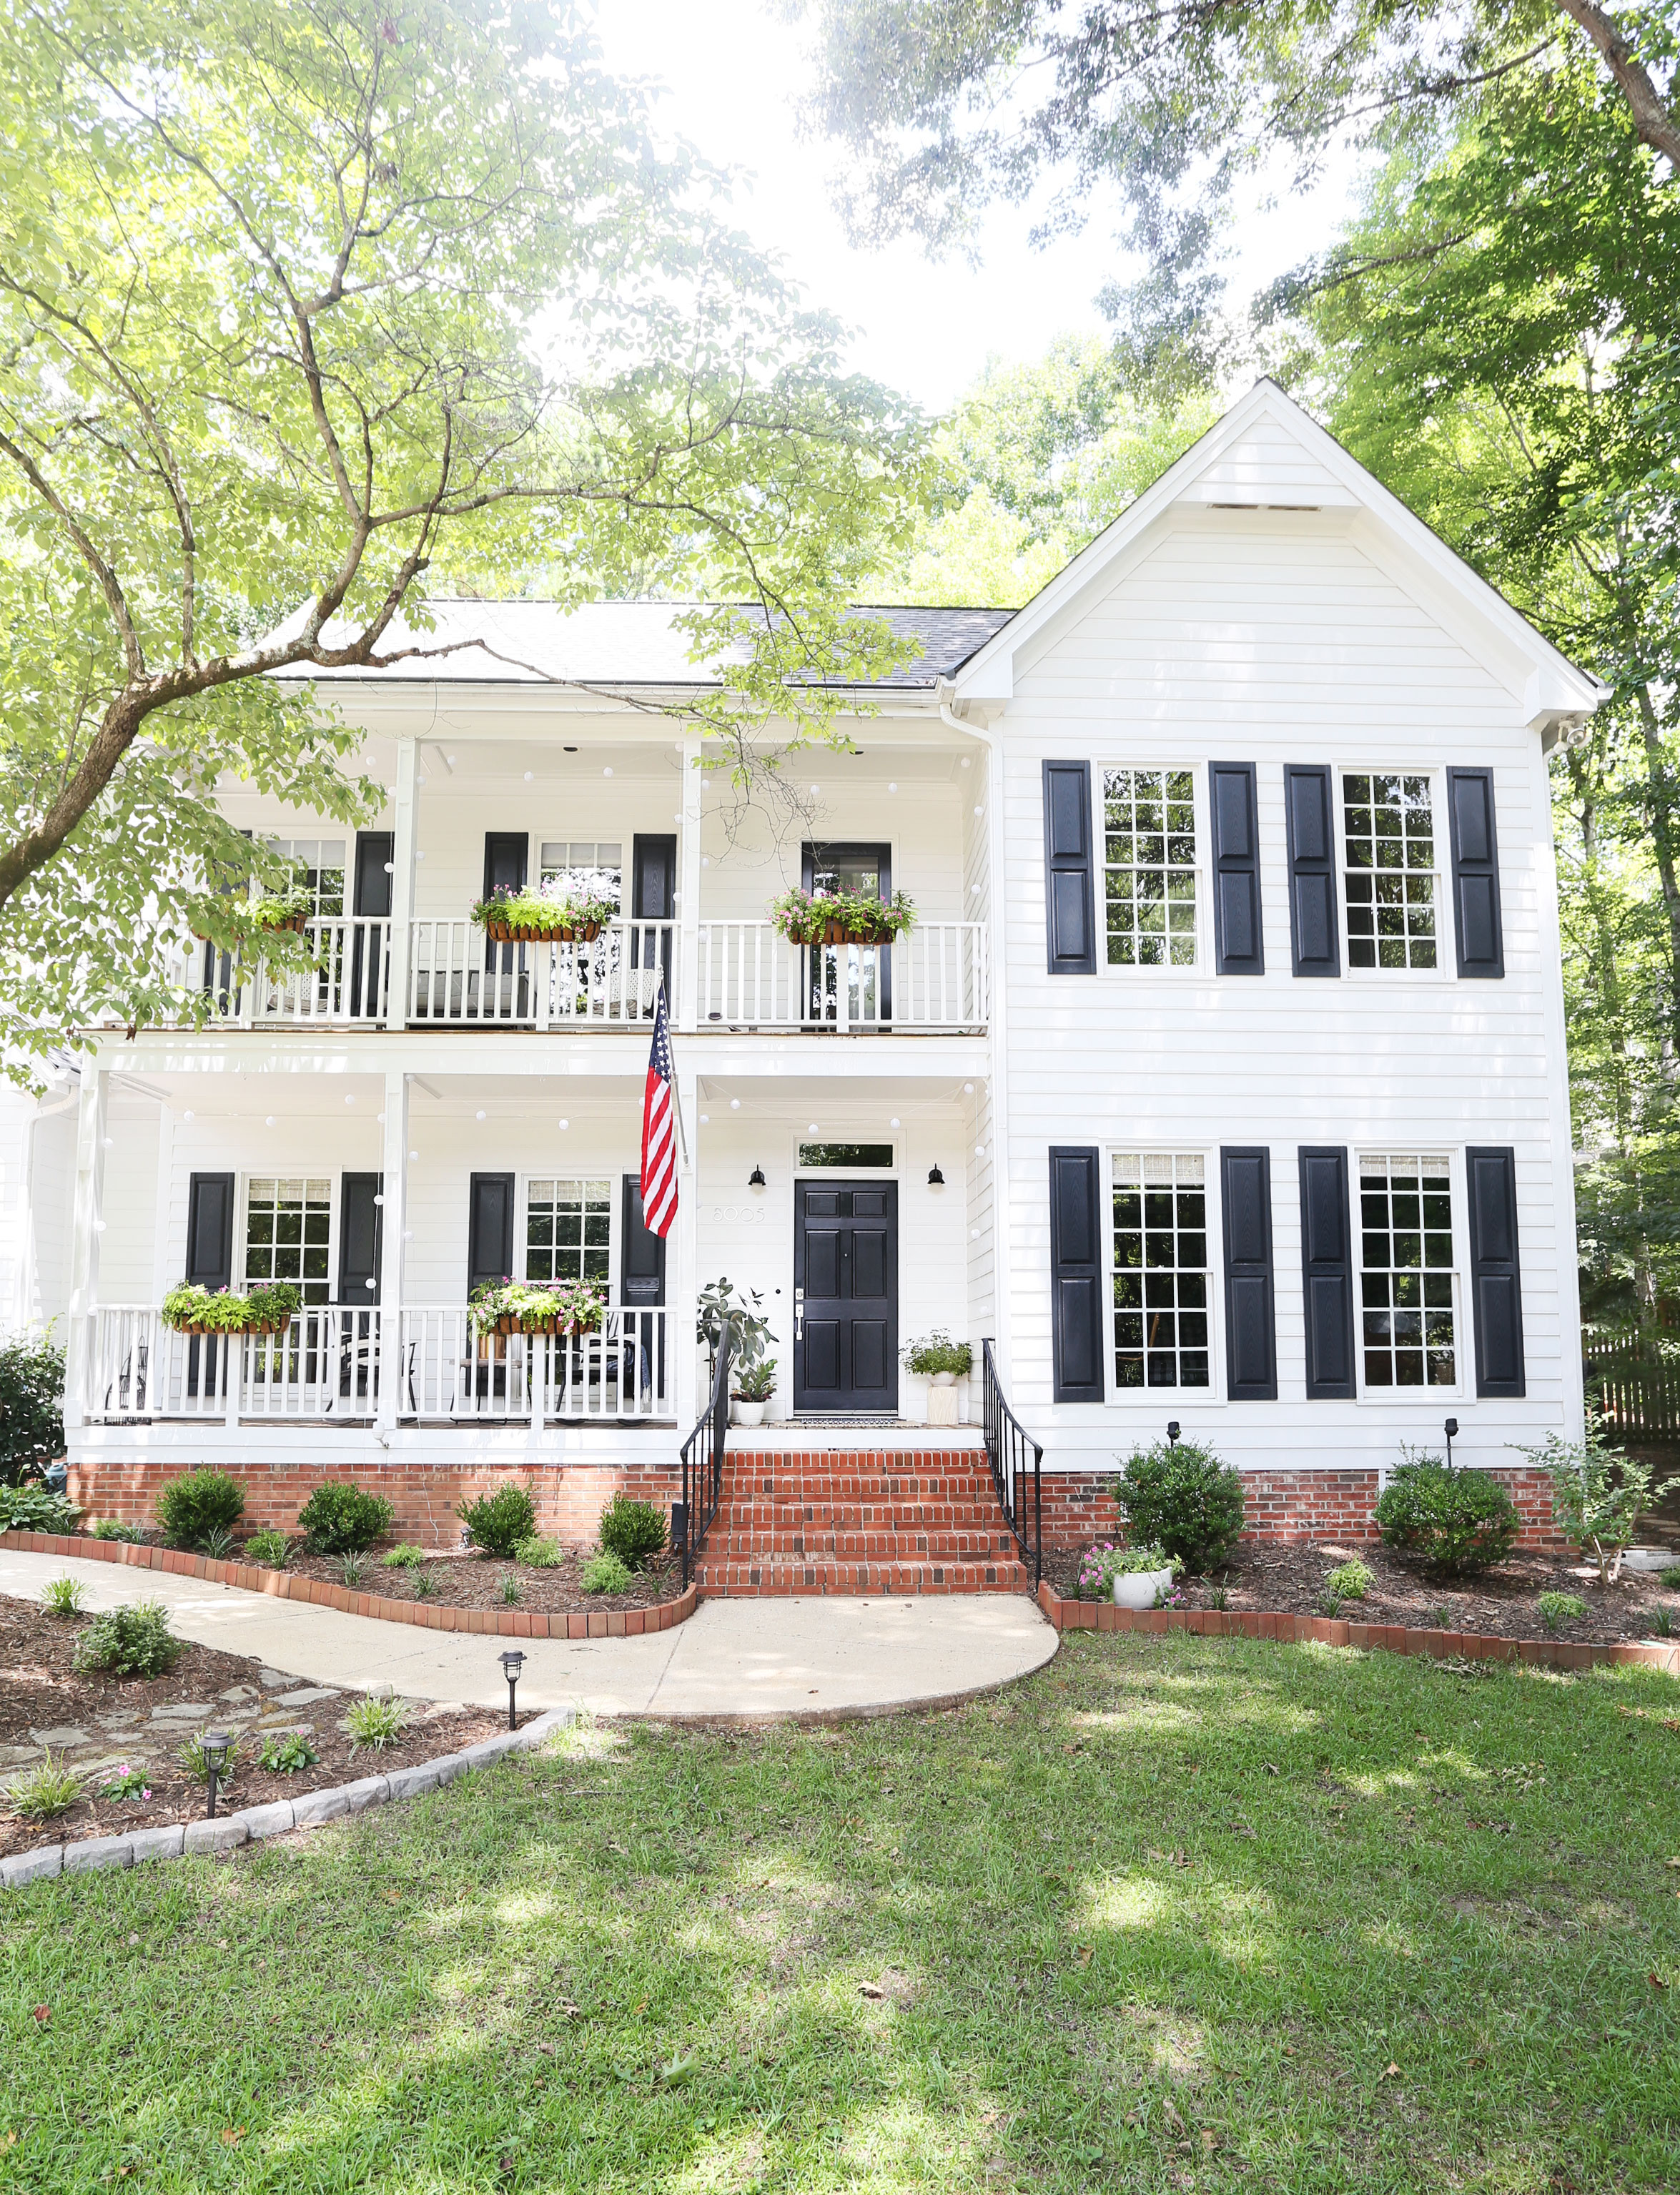 6 TIPS TO ADD CURB APPEAL